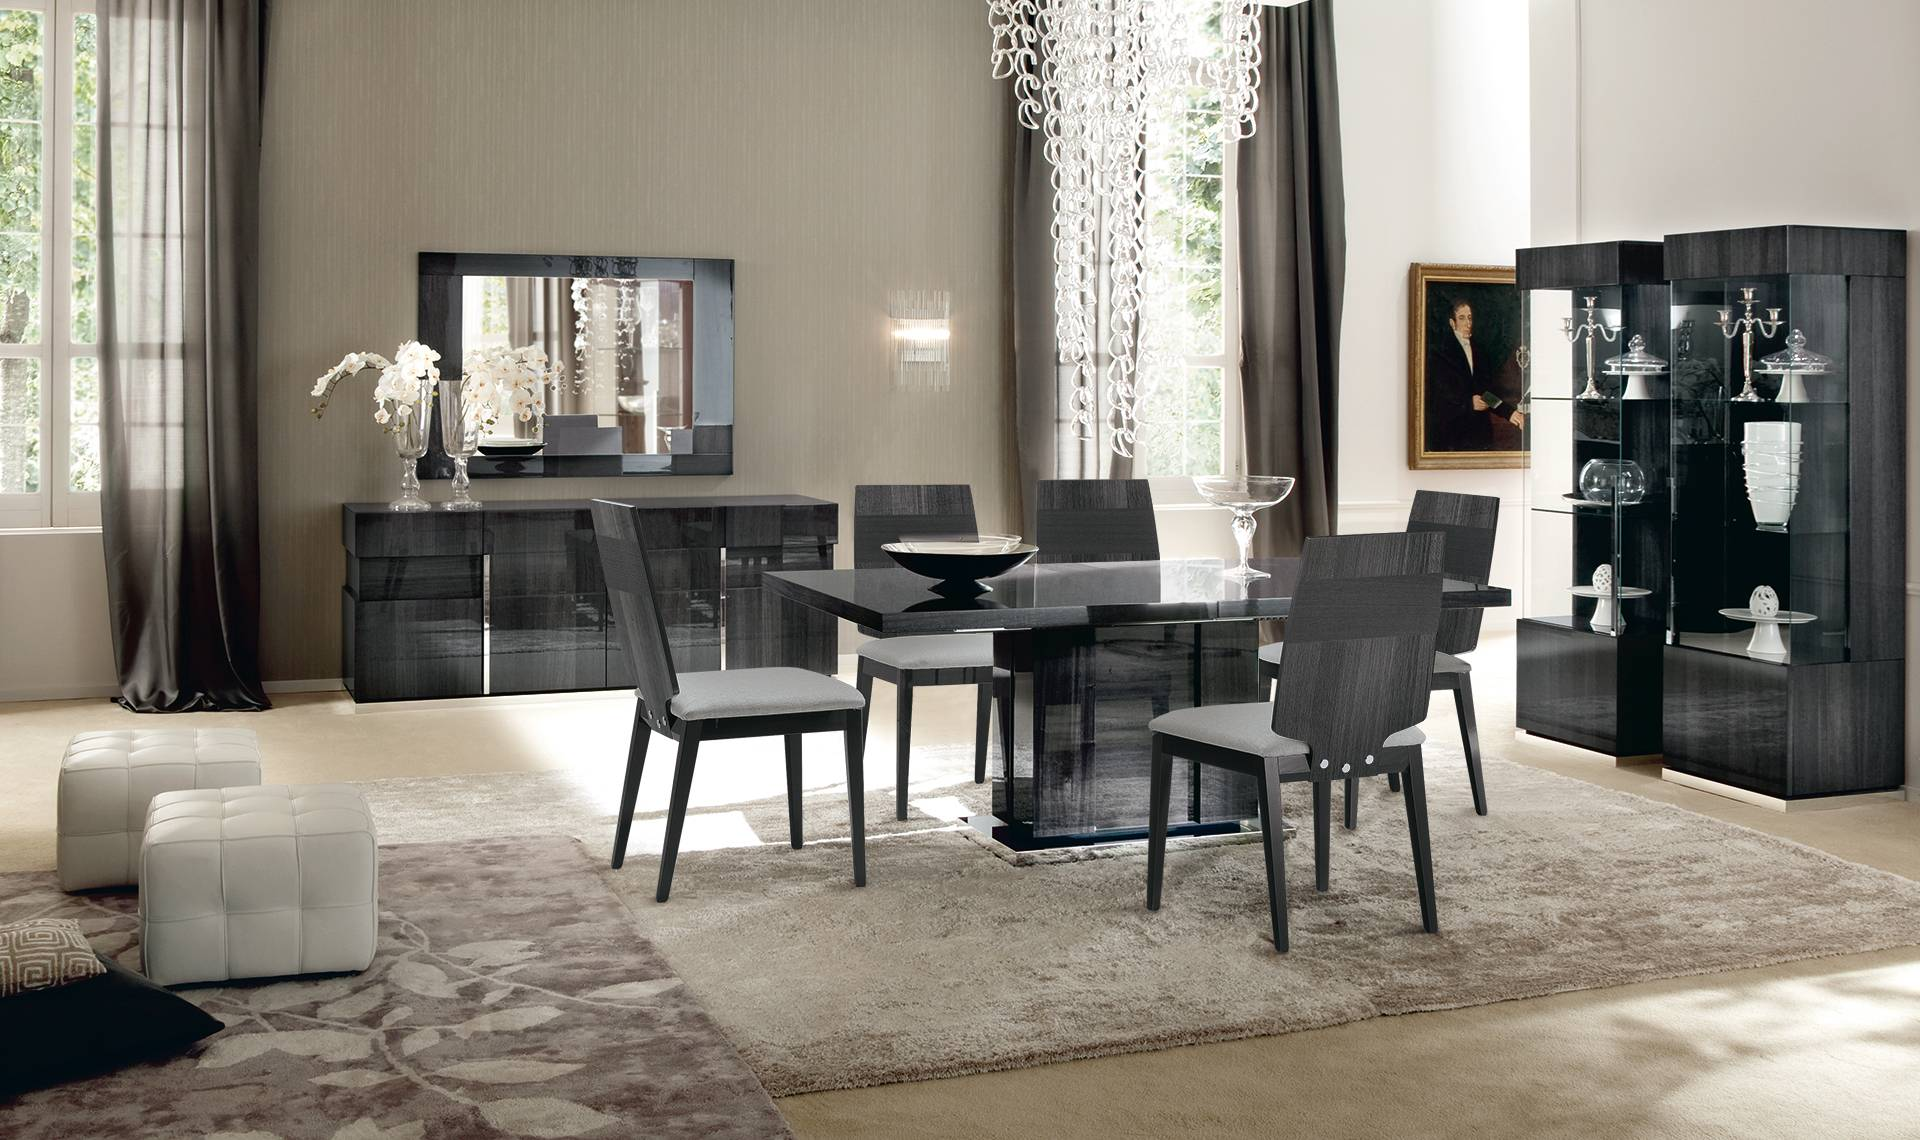 ottoman tables living room indian traditional interior design ideas for rooms alf italia montecarlo table - extending dining ...